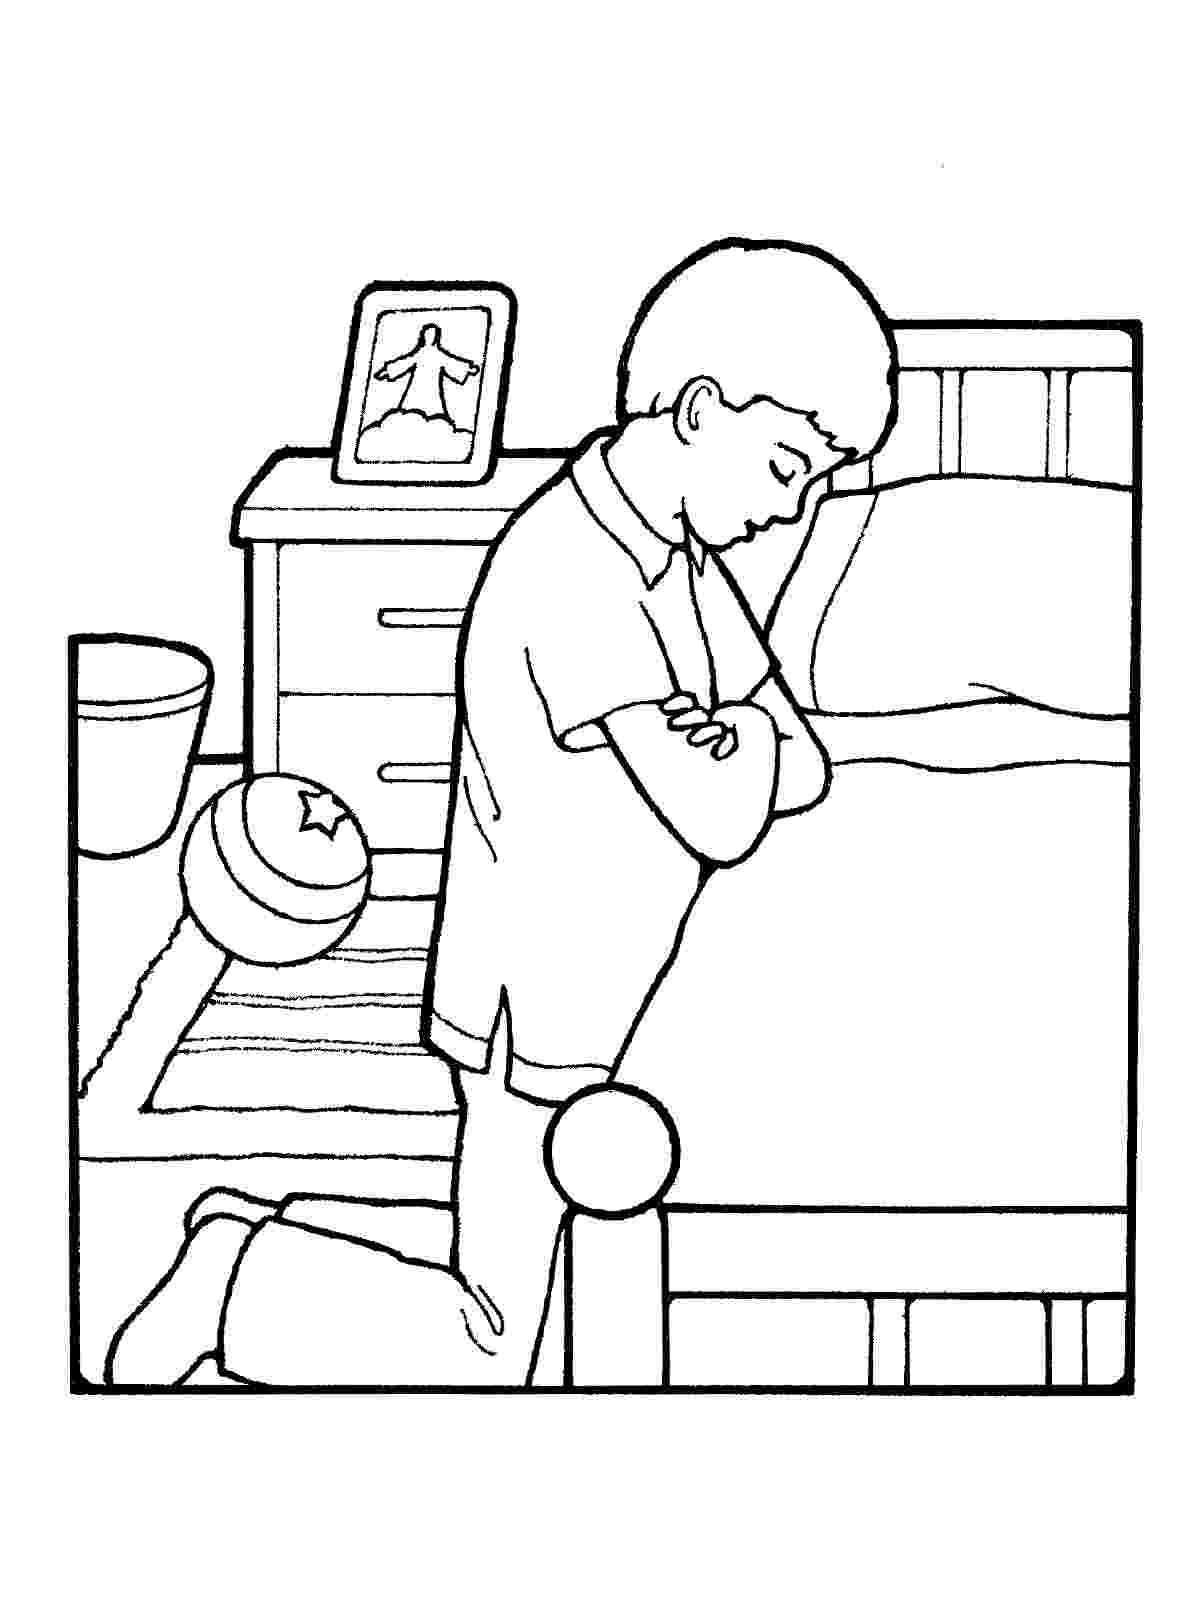 boy praying coloring page boy praying at bedside coloring page boy praying